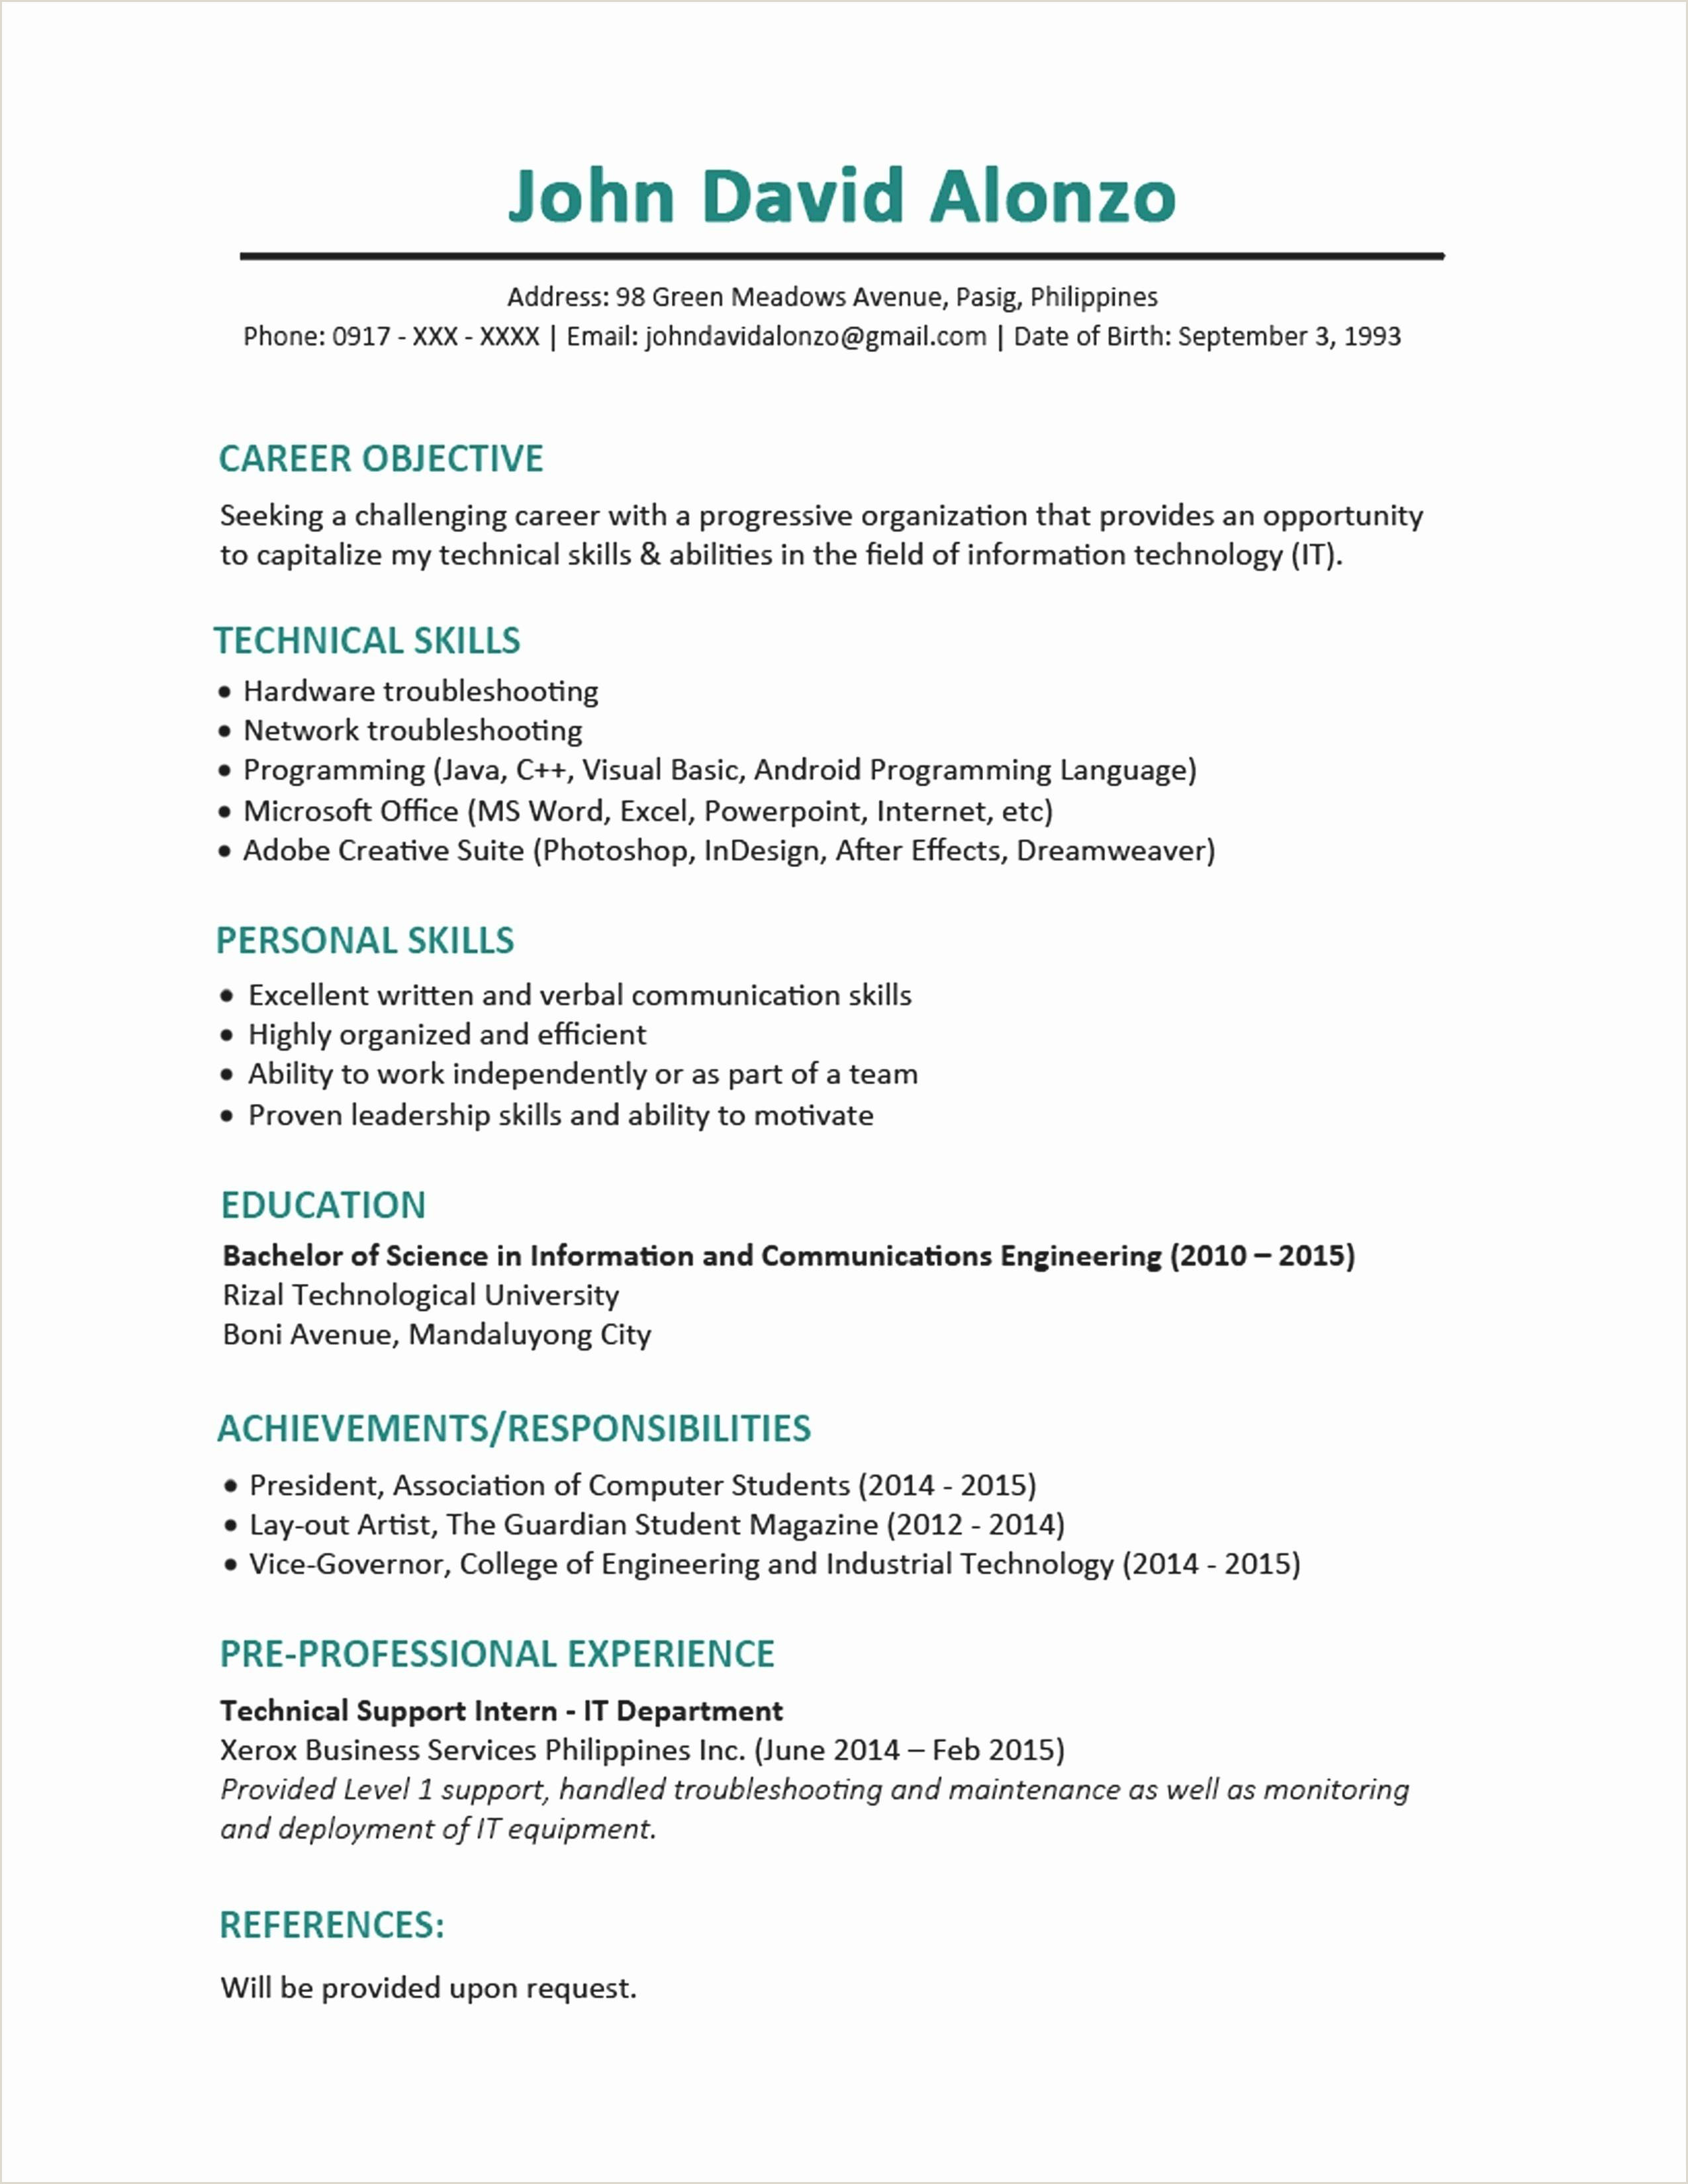 Latest Cv format 2015 In Ms Word Cv Mercial Exemple Resume Templates Word 2010 Xenakisworld